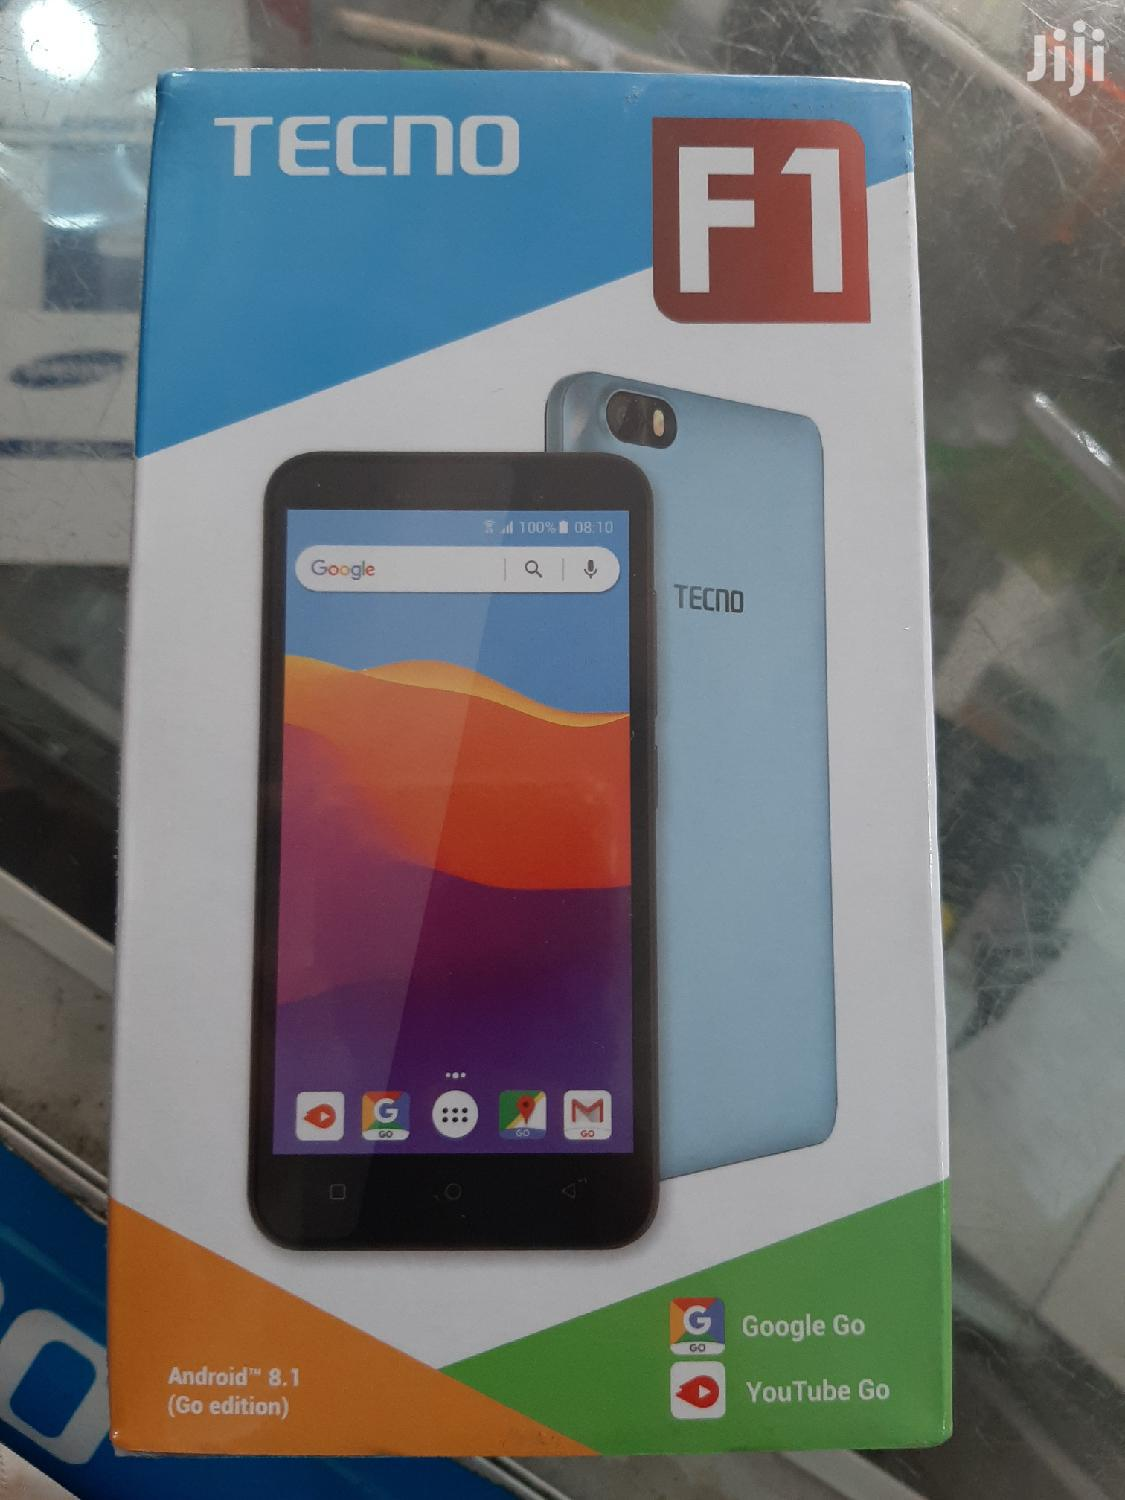 Archive: New Tecno F1 8 GB Black